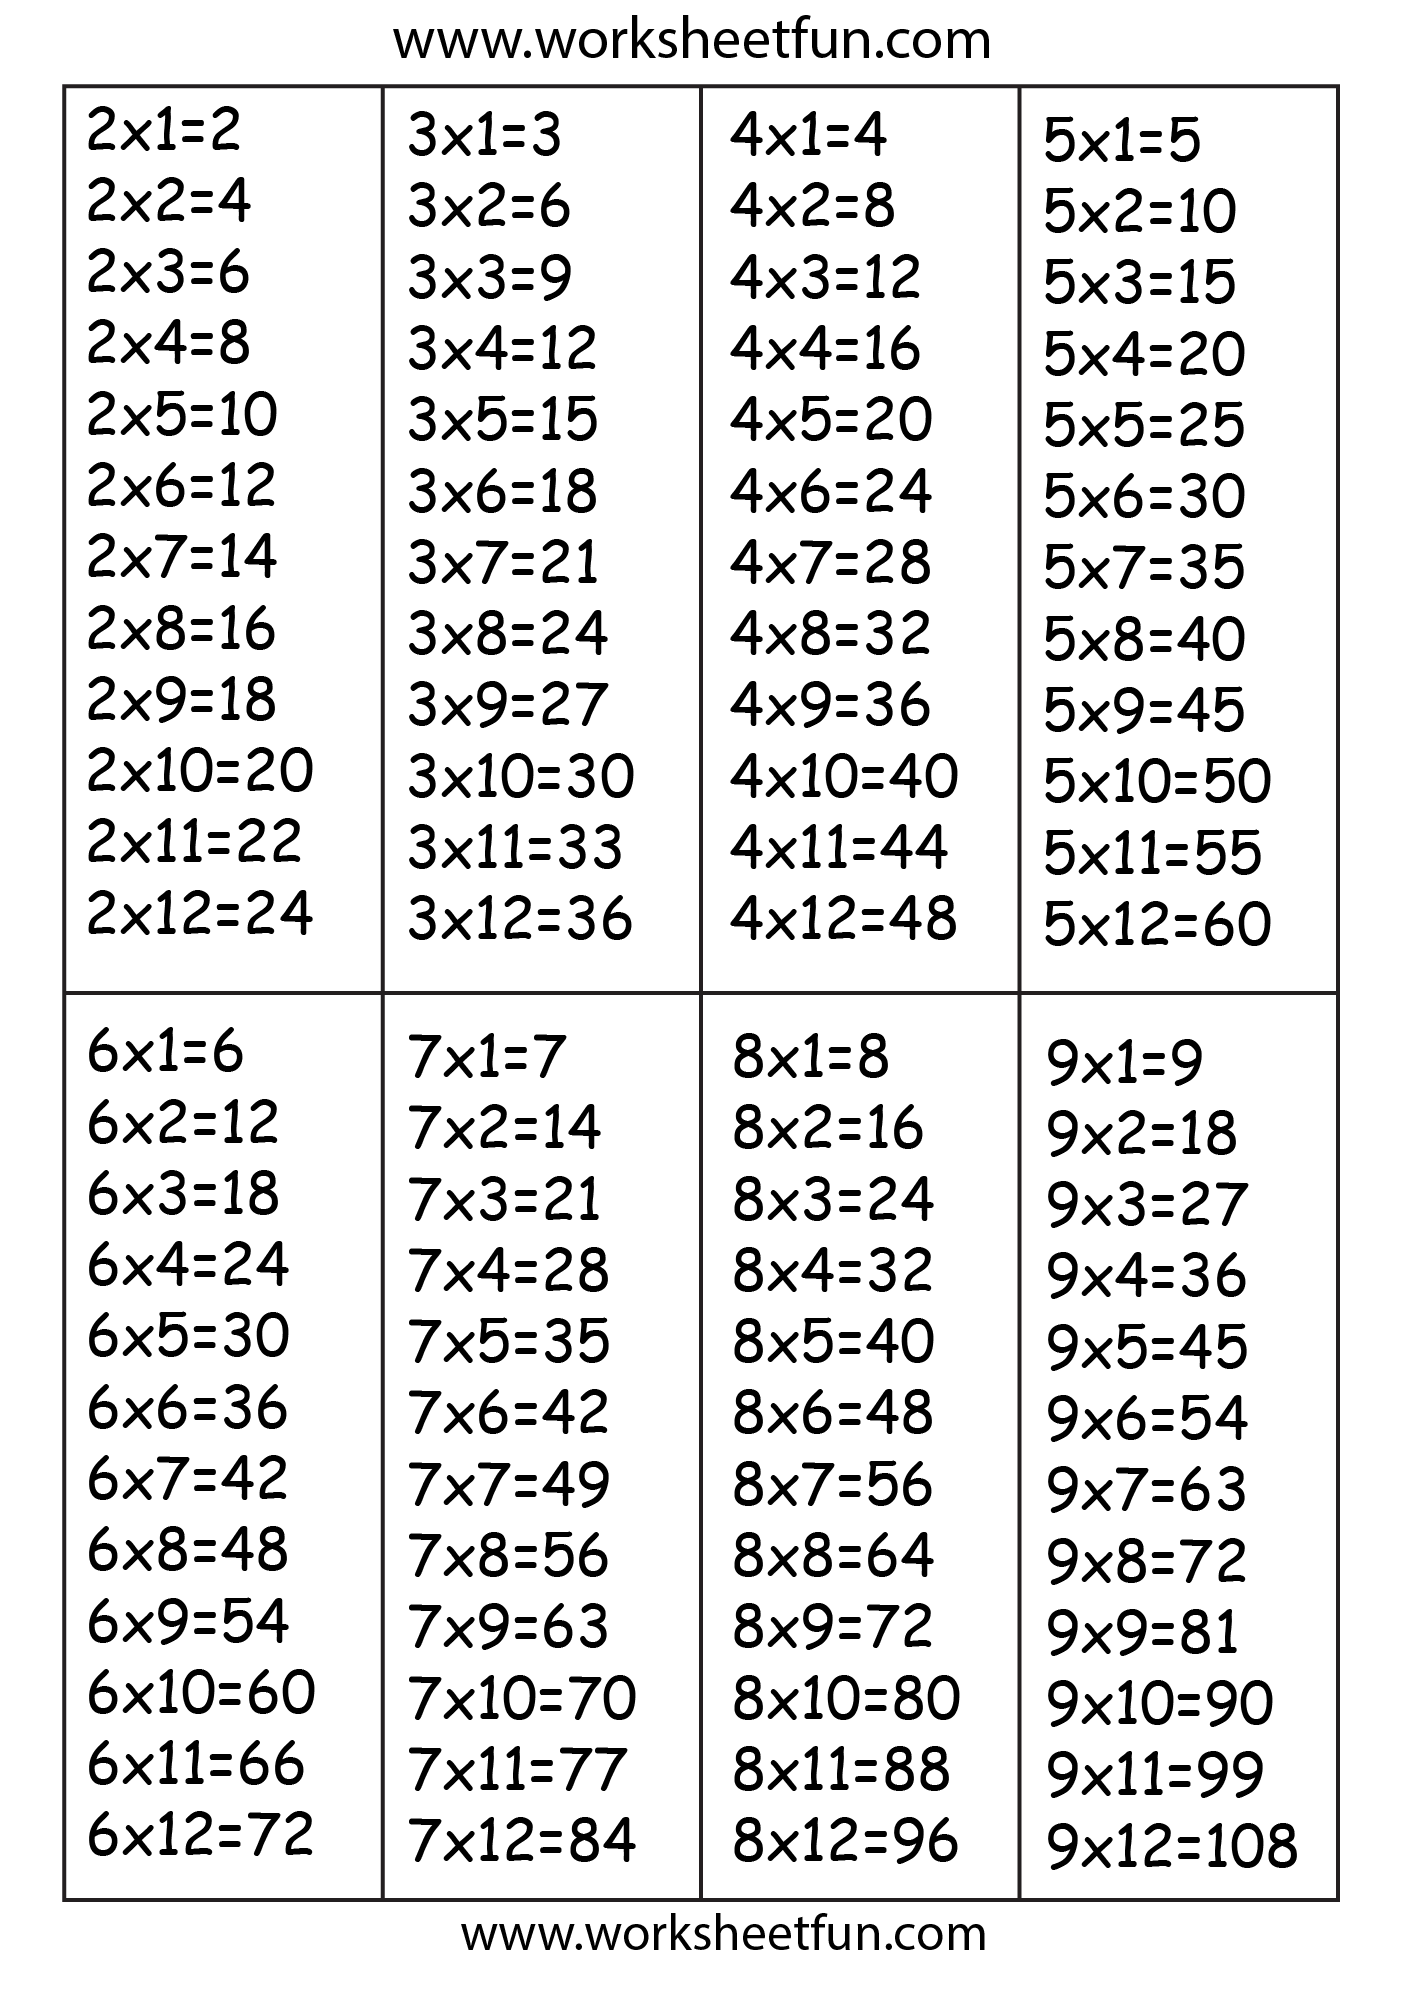 Times Table Chart 2 3 4 5 6 7 8 9 FREE Printable – Multiplication 1-12 Worksheets